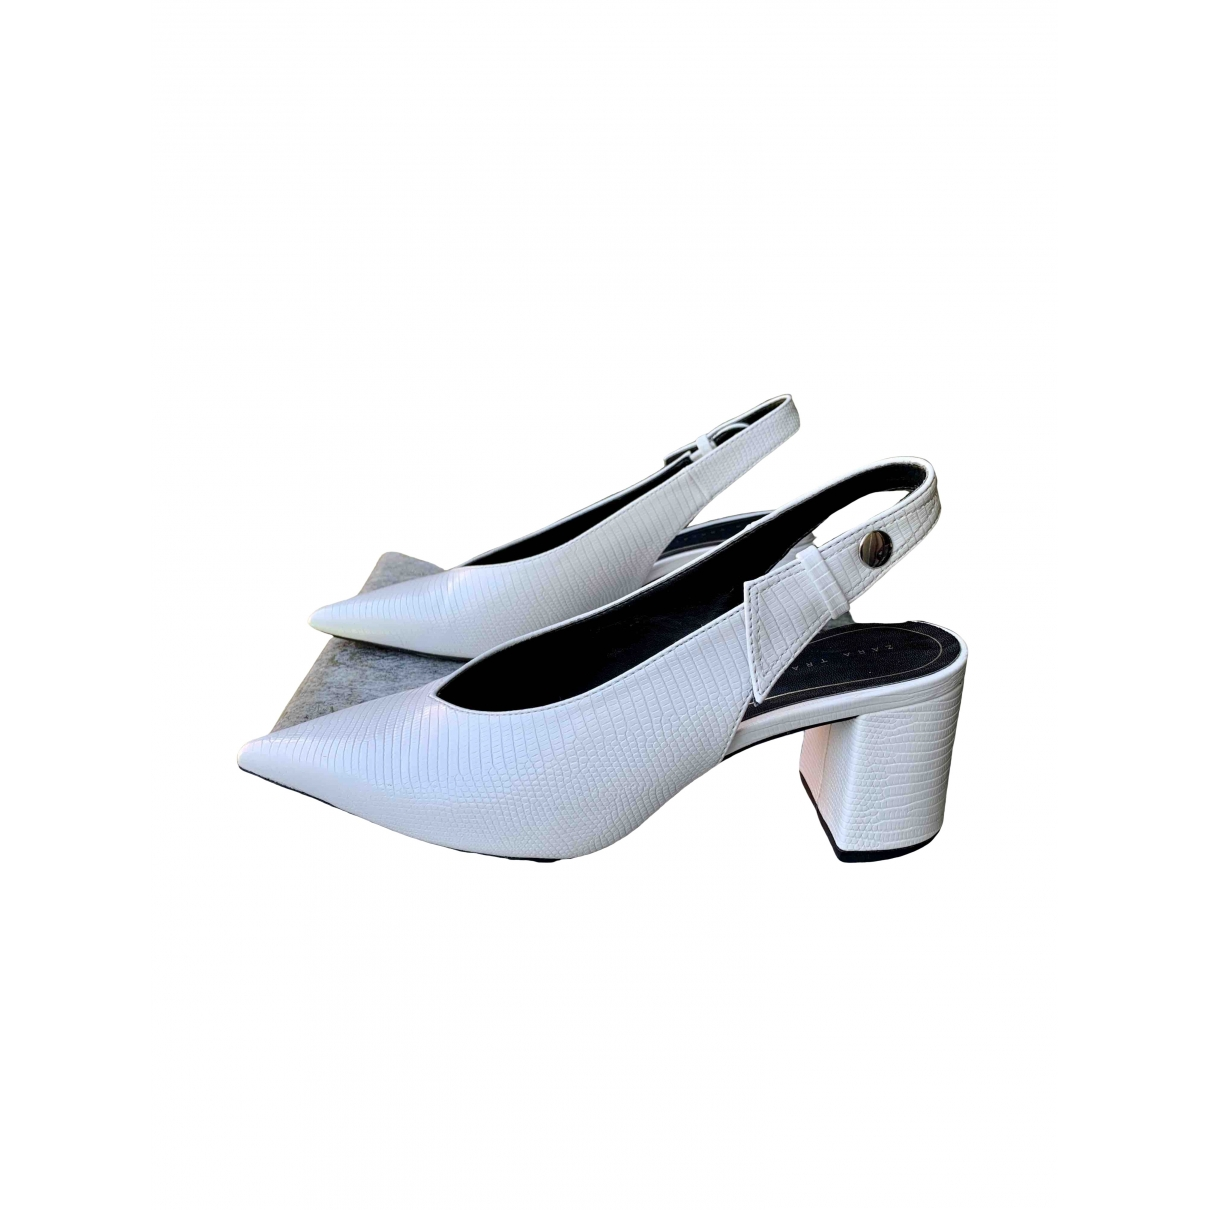 Zara \N White Heels for Women 37 EU